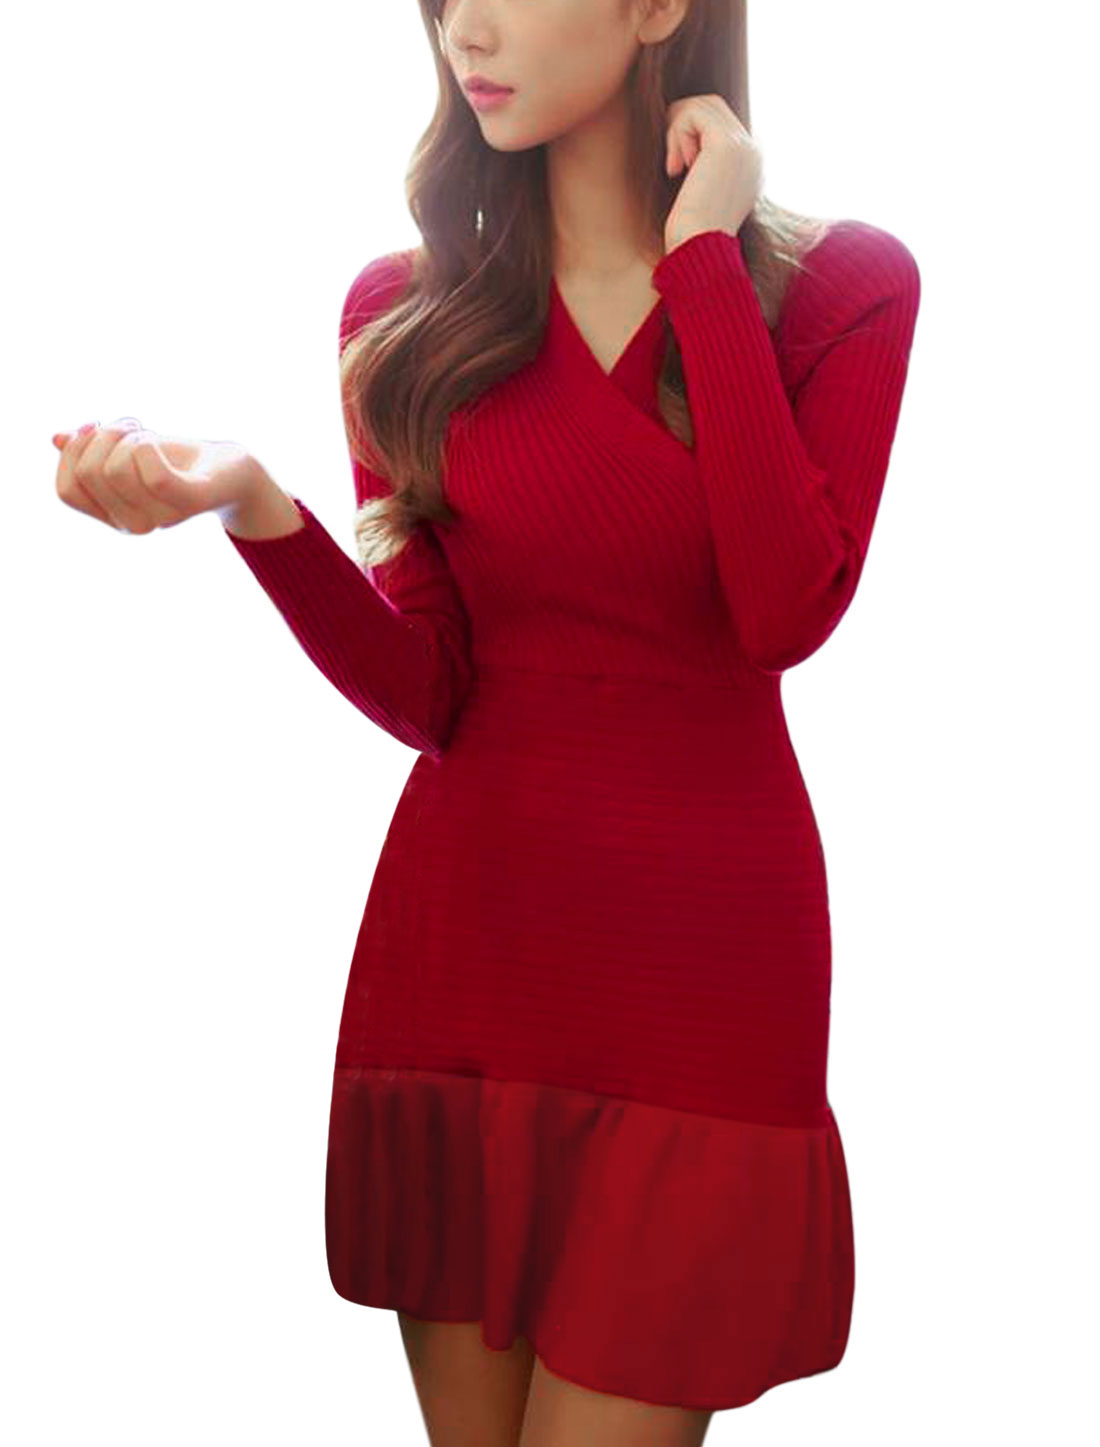 Women Spliced Long Sleeve Slipover Slim Knitted Dress Red M